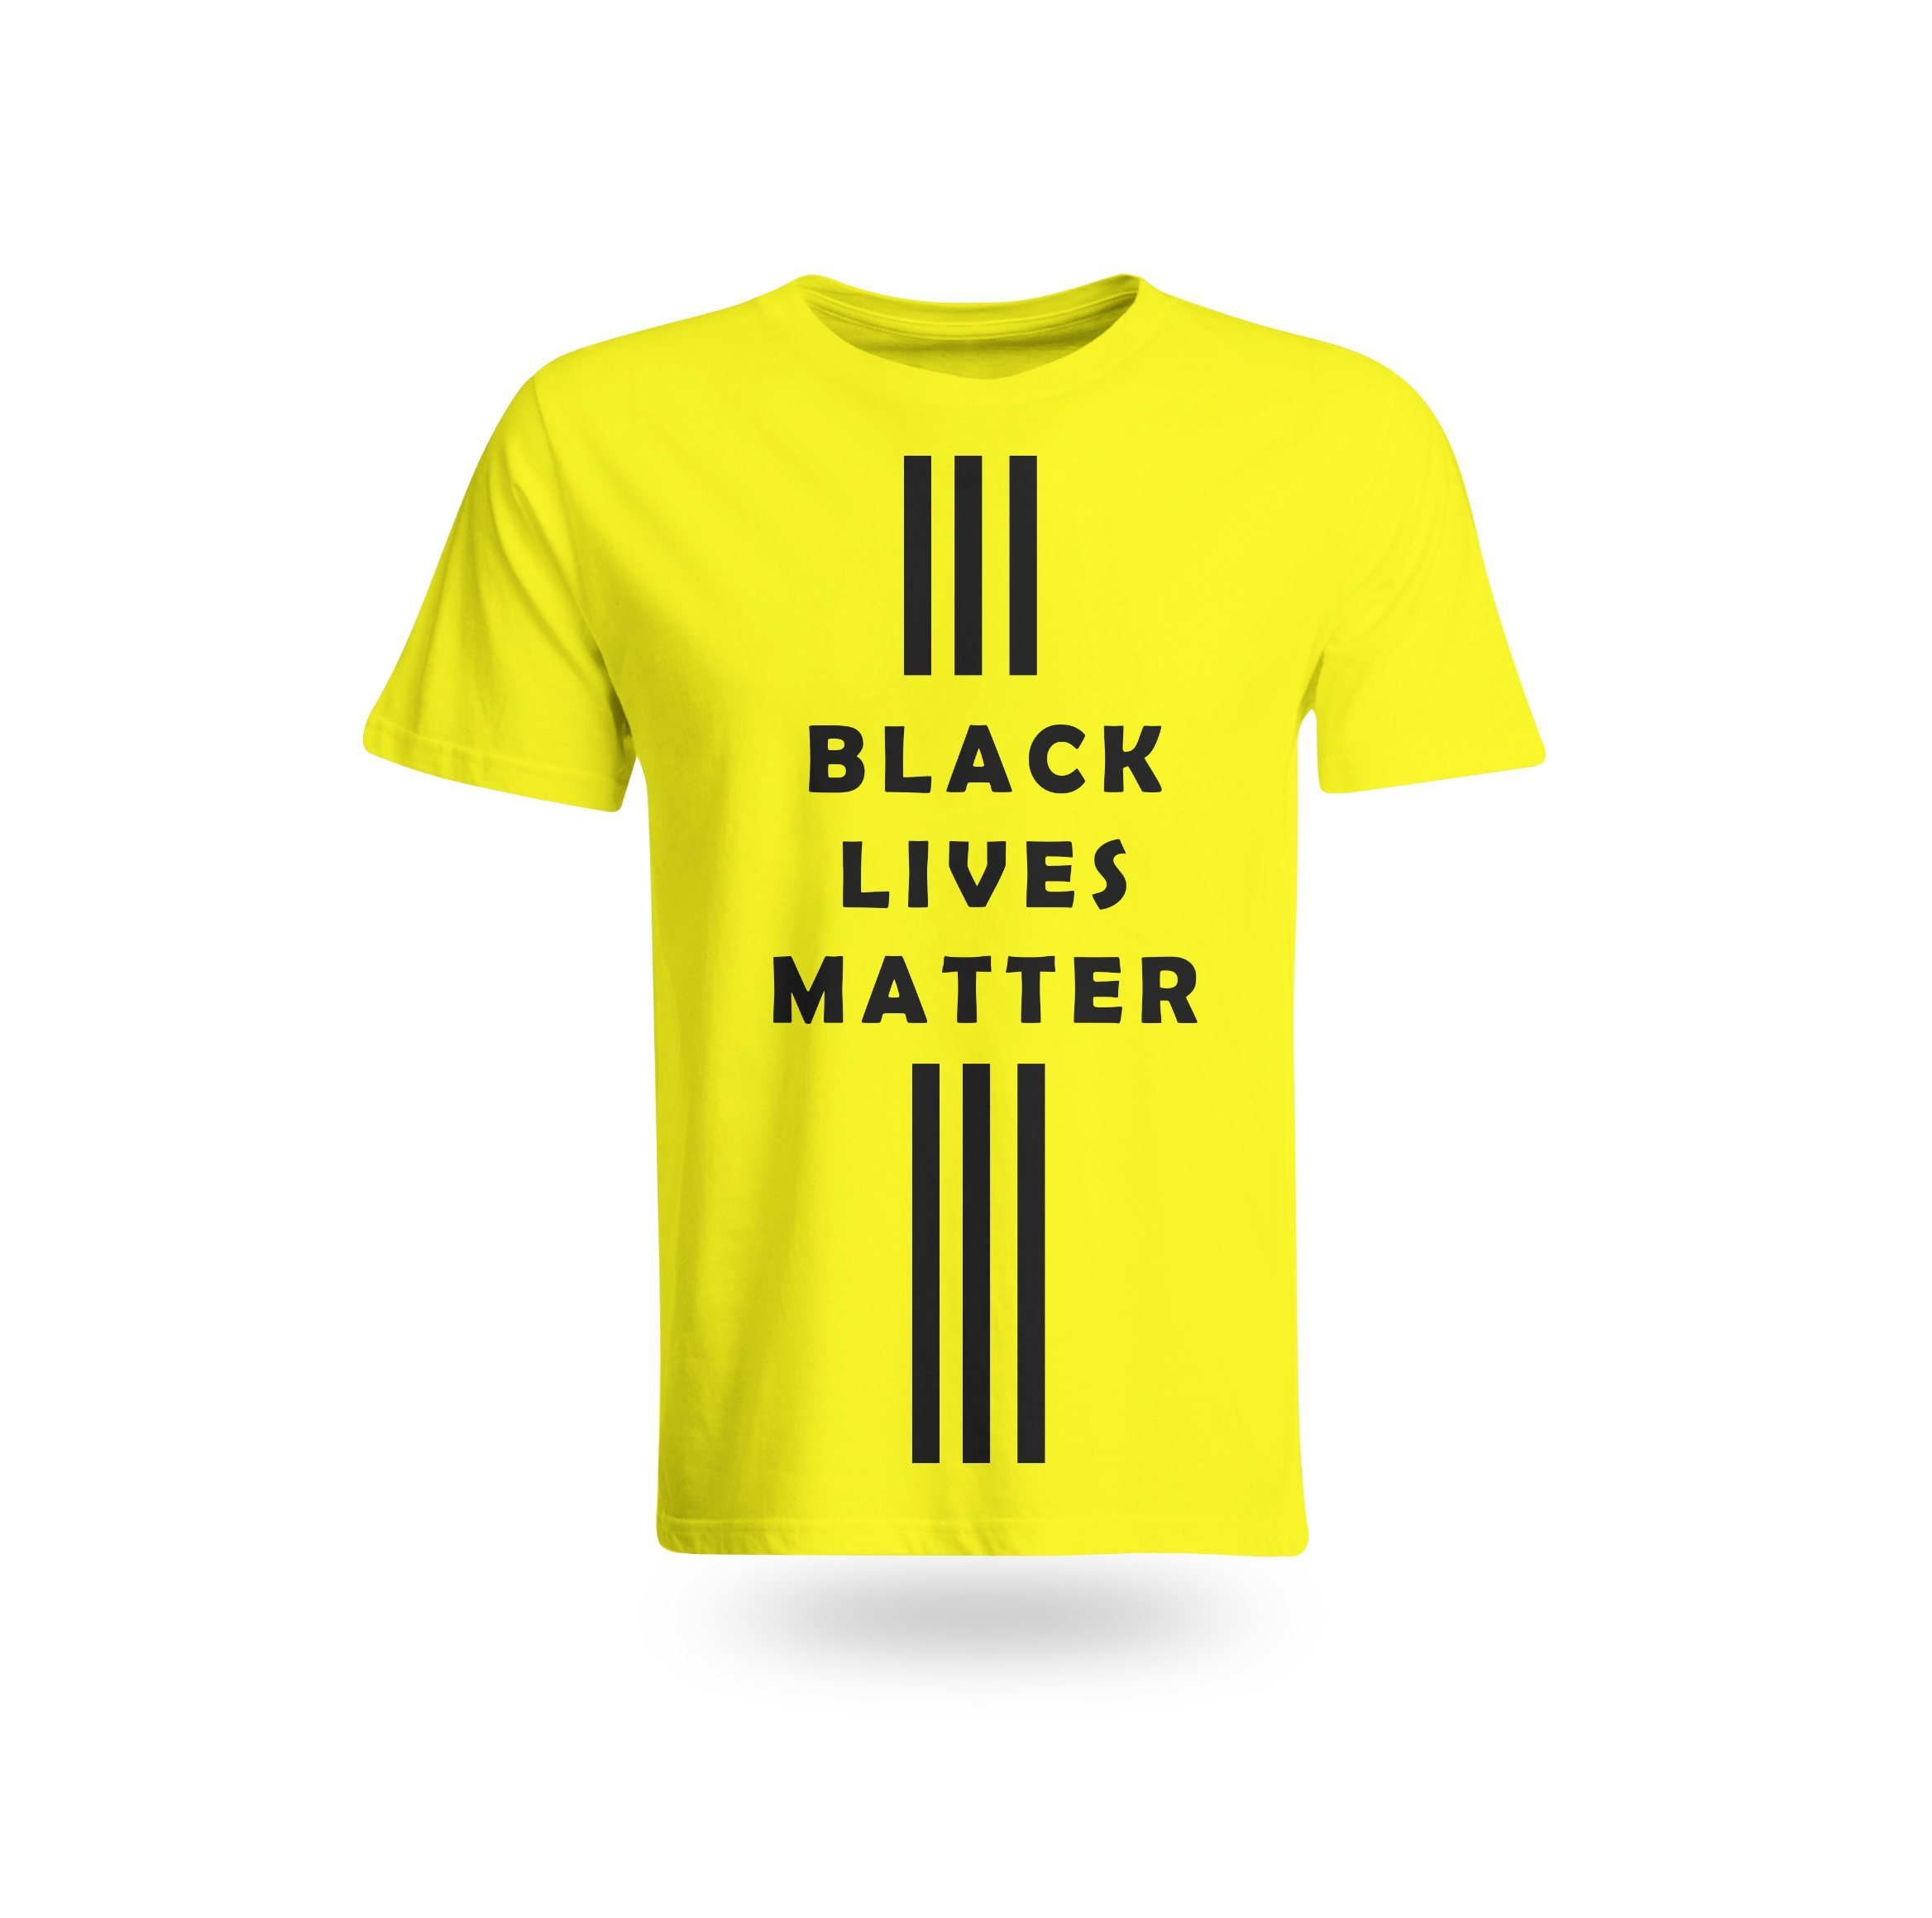 [Hot Item] Black Lives Matter Shirt, Black History Month, Lives Matter T Shirt,